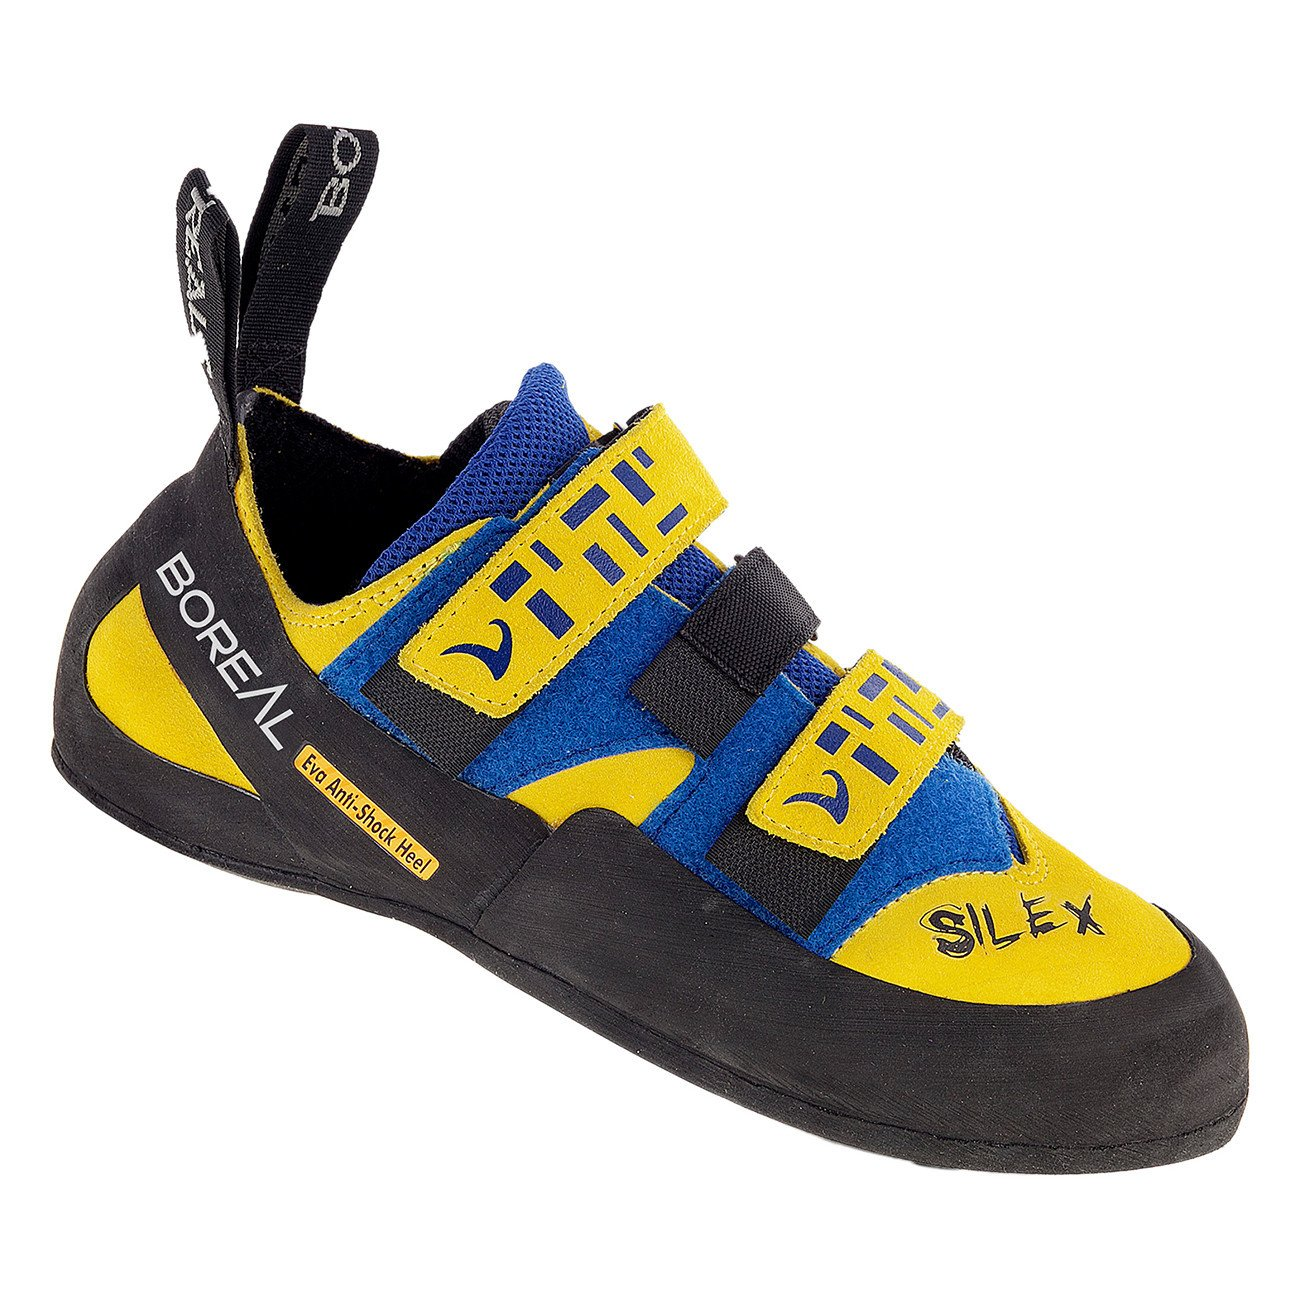 Boreal Silex Velcro climbing shoe, in black, blue and yellow colours